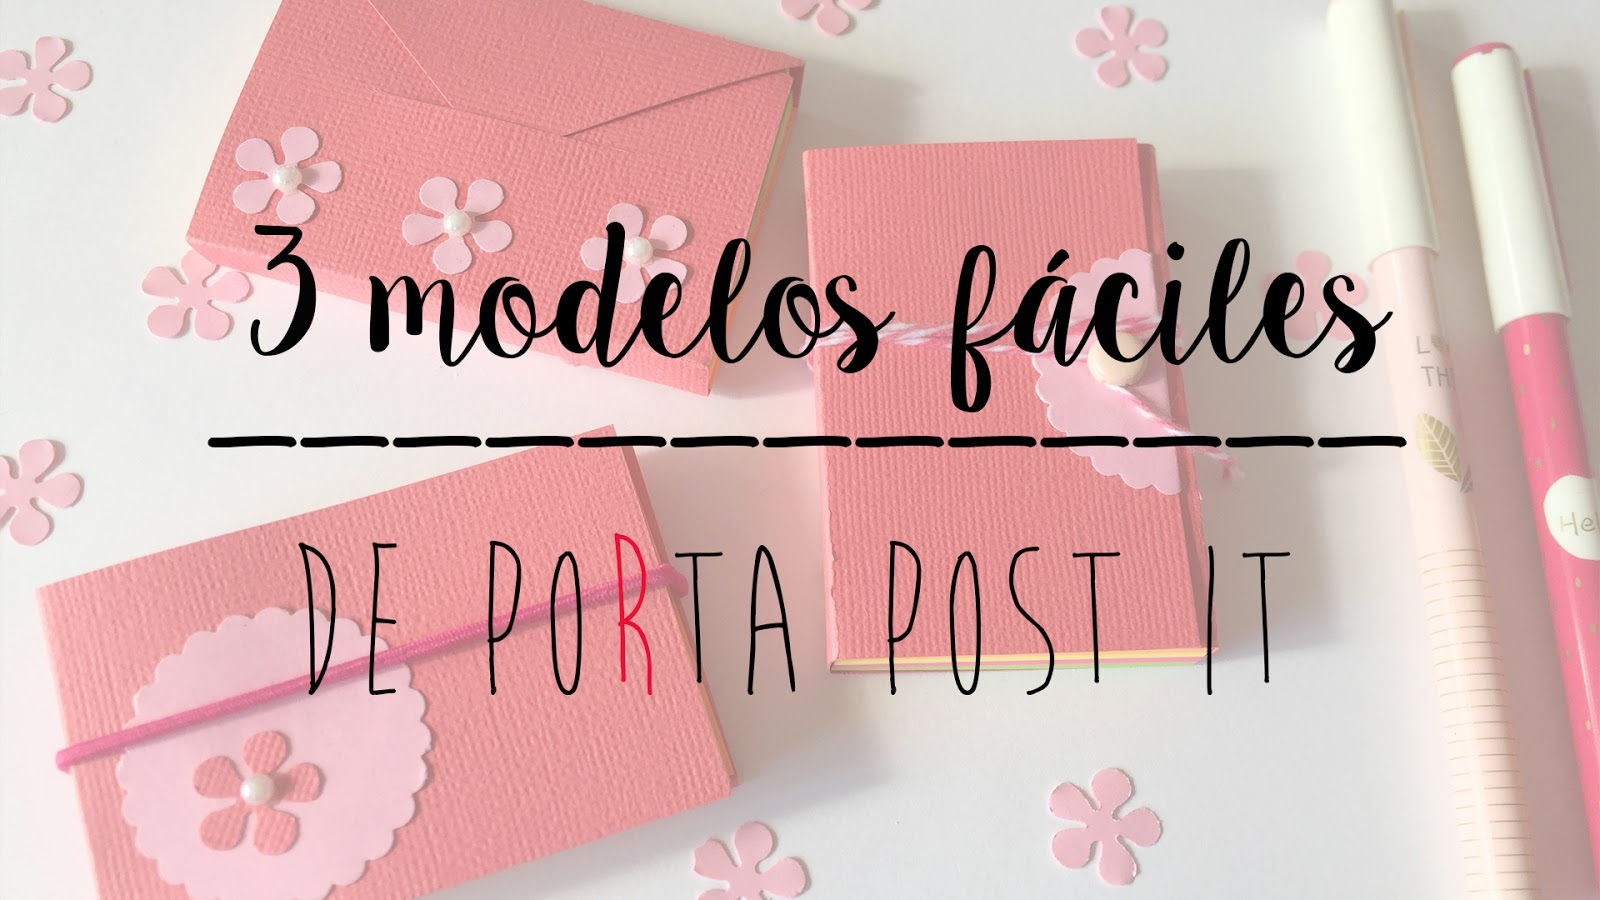 CARPETITAS PORTA POST IT